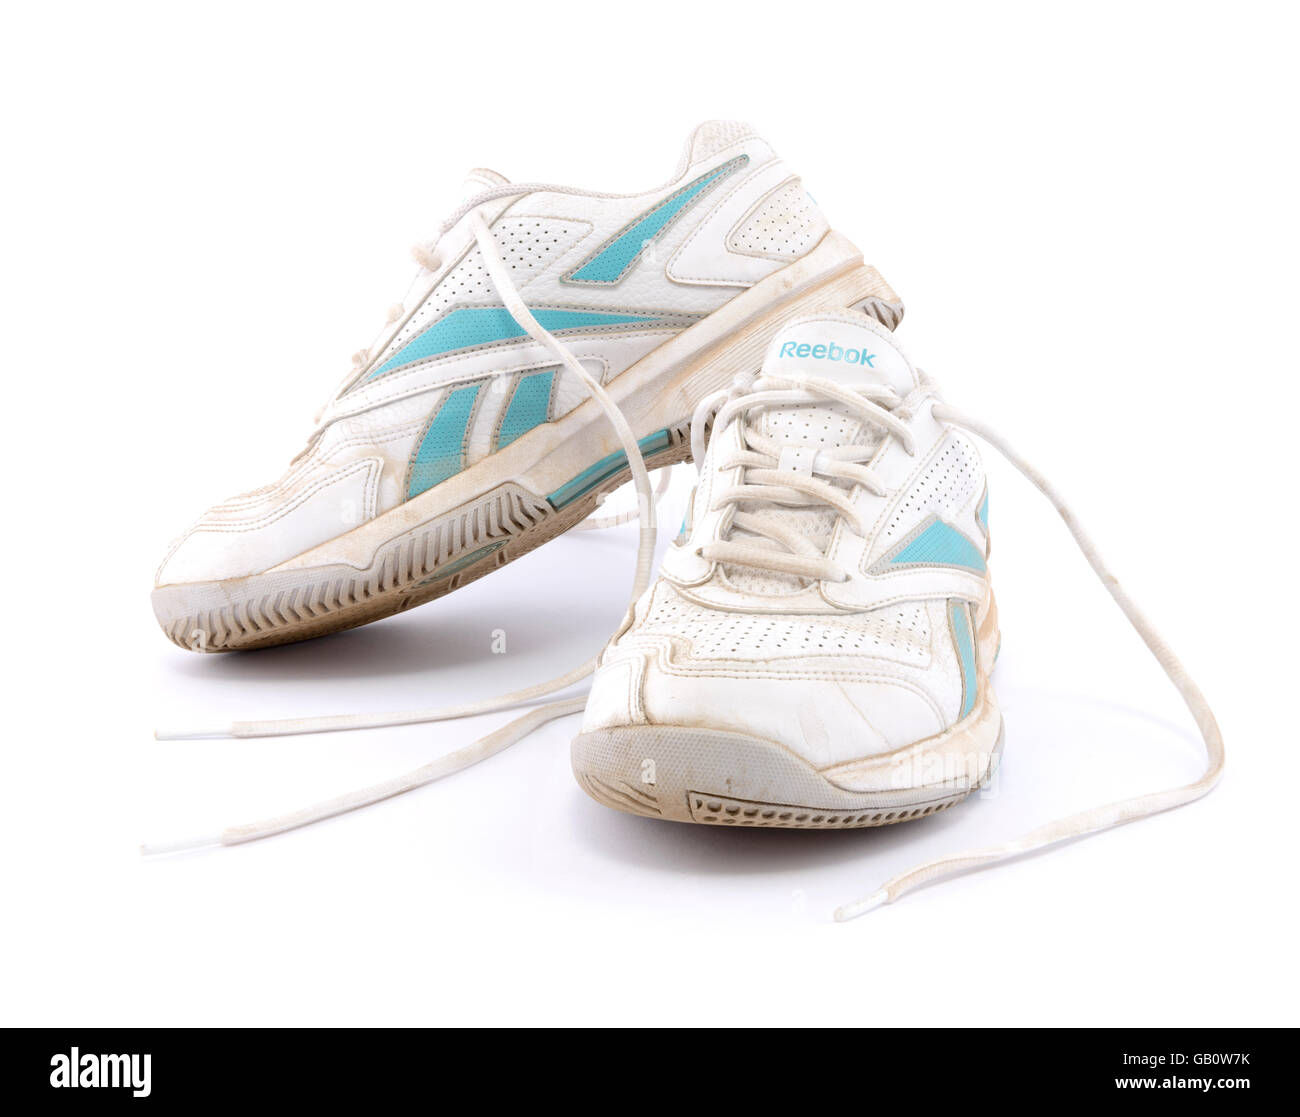 ae5d373d970 Pair of old Reebok running shoes isolated on white background - Stock Image